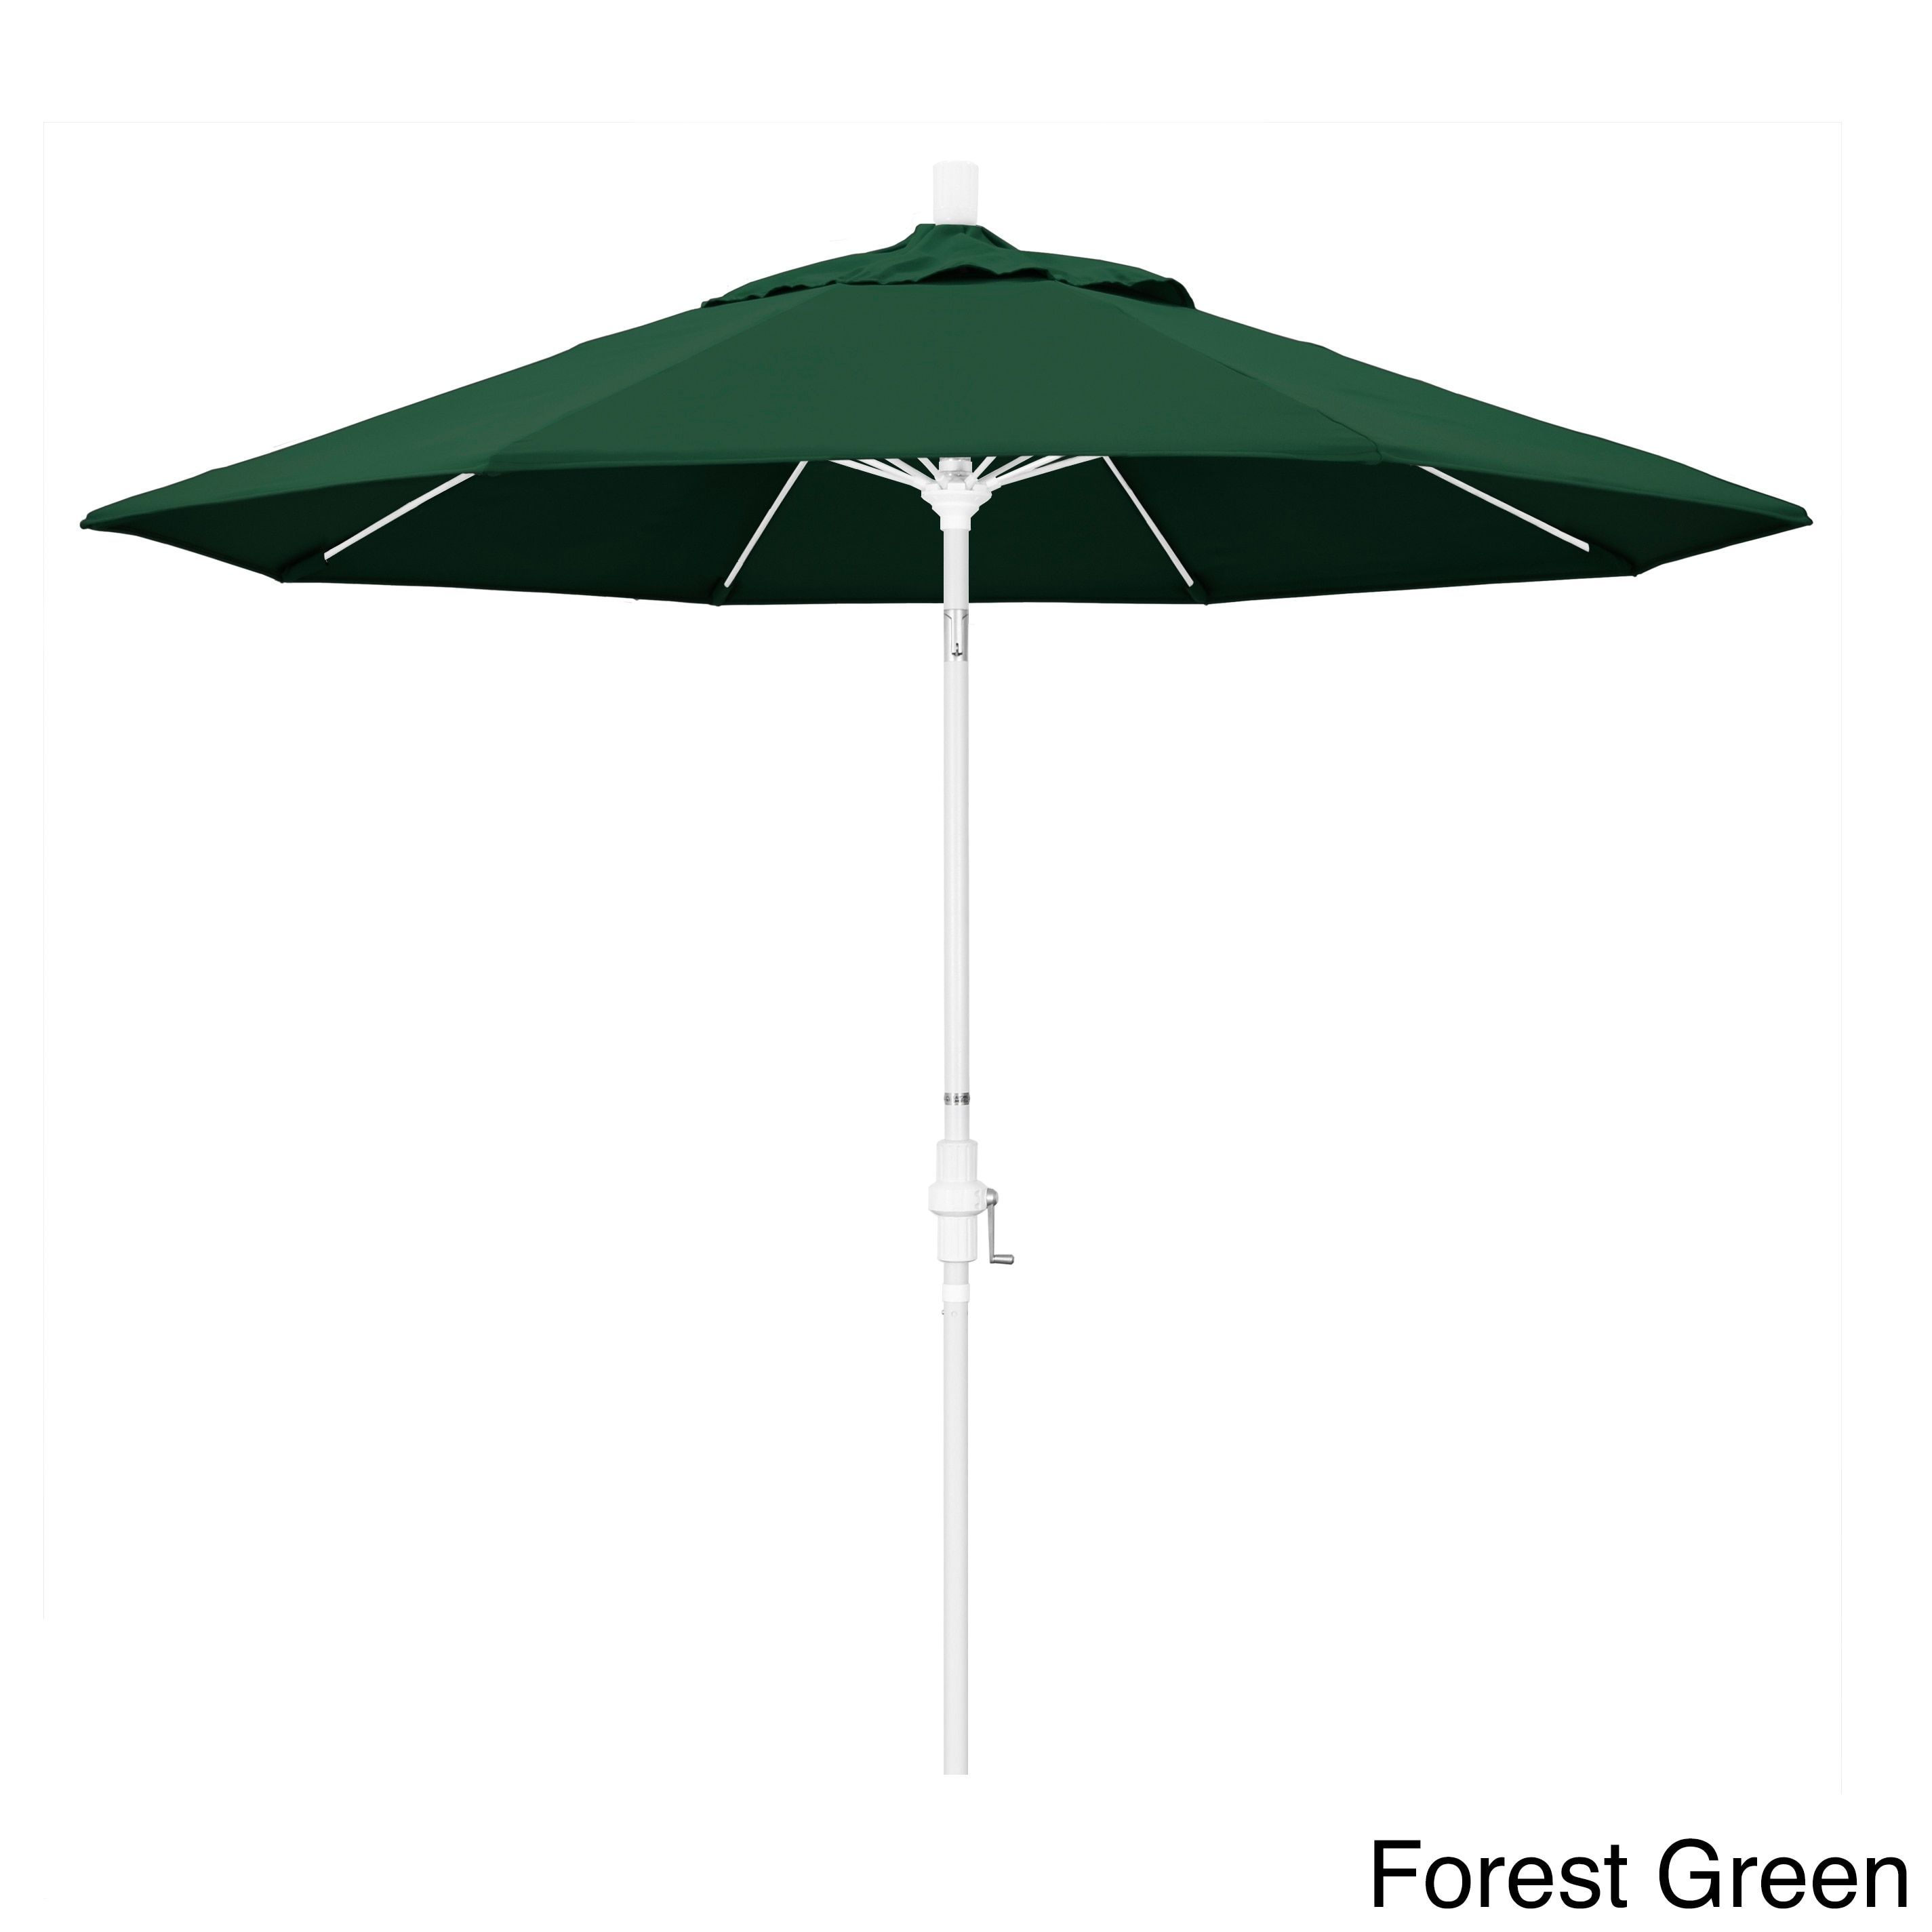 11 Octagon Cantilever Umbrella Customized With A Double Wind Vent And Valence The Canopy Fabric Color Is Buttercup The Patio Umbrella Umbrella Lights Patio